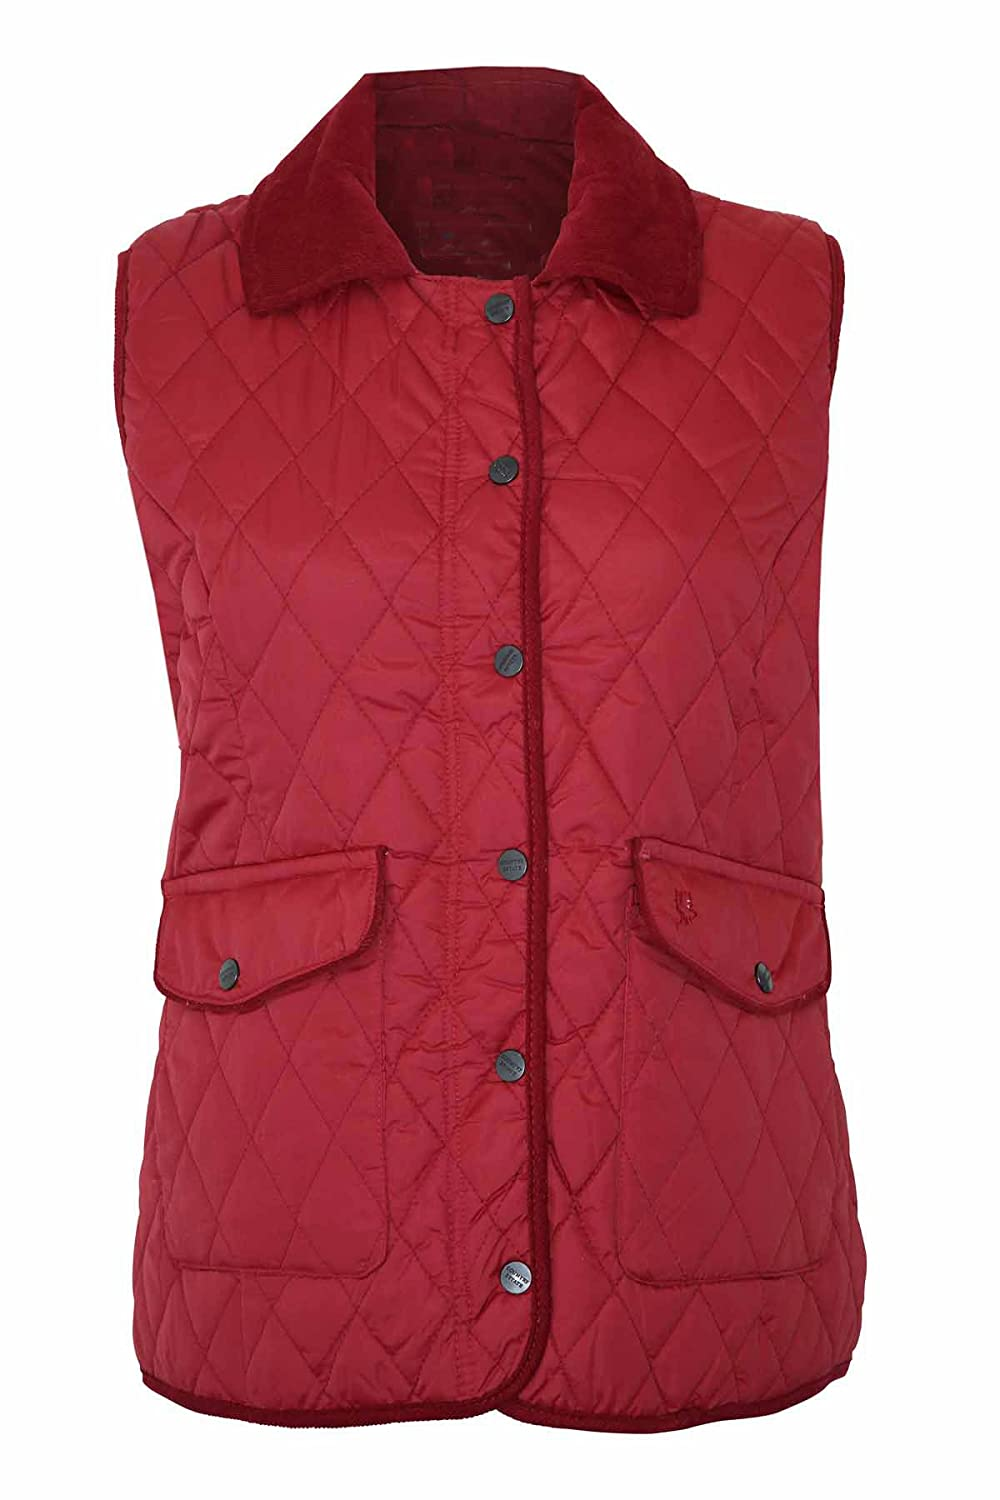 Champion Country Estate Womens Quilted Gilet Bodywarmer LGILET-1601